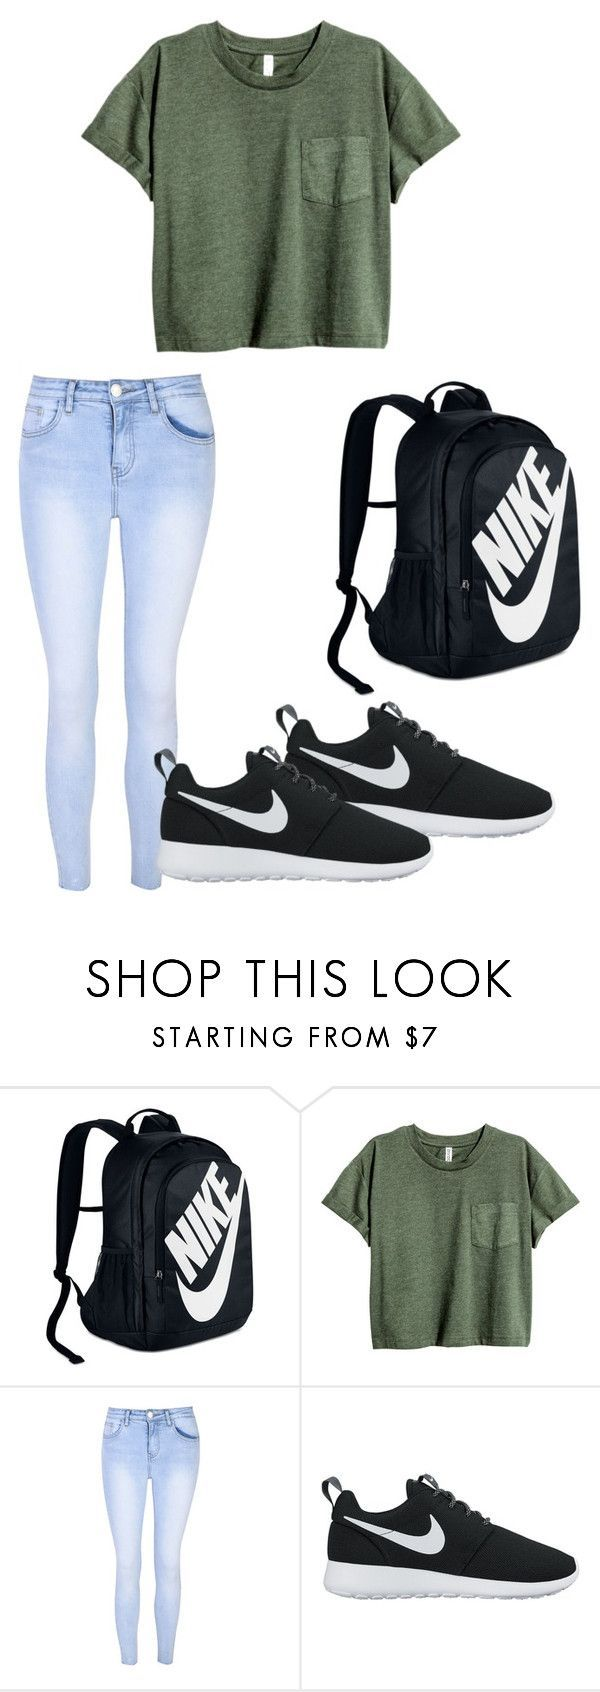 School outfit – Brands